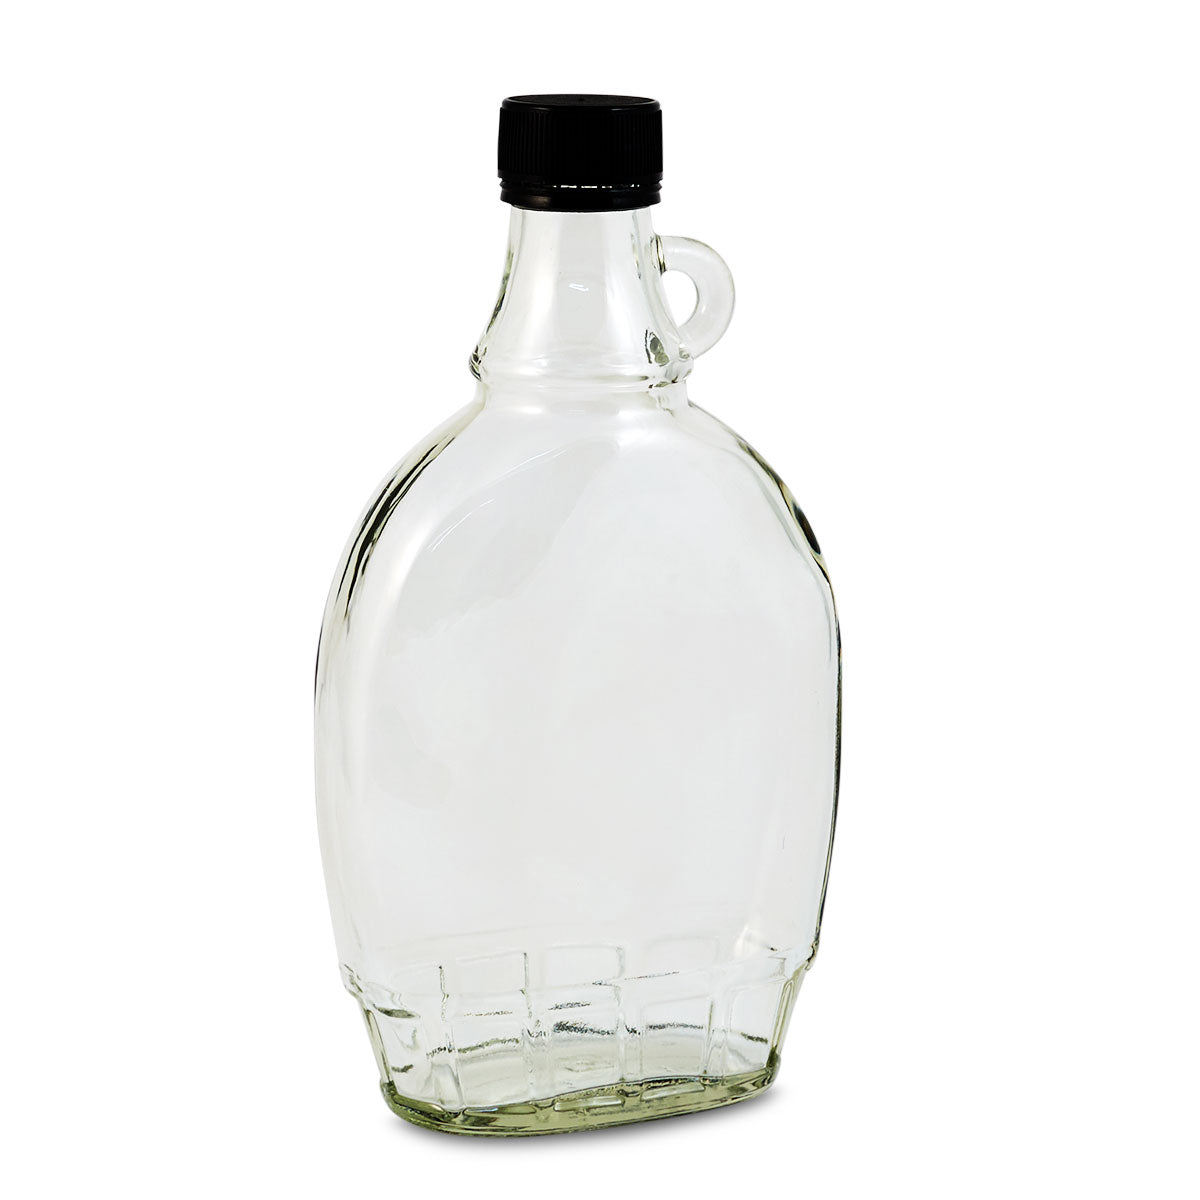 12 oz Glass Bottle w/Drop Lock Thread (12 per case)